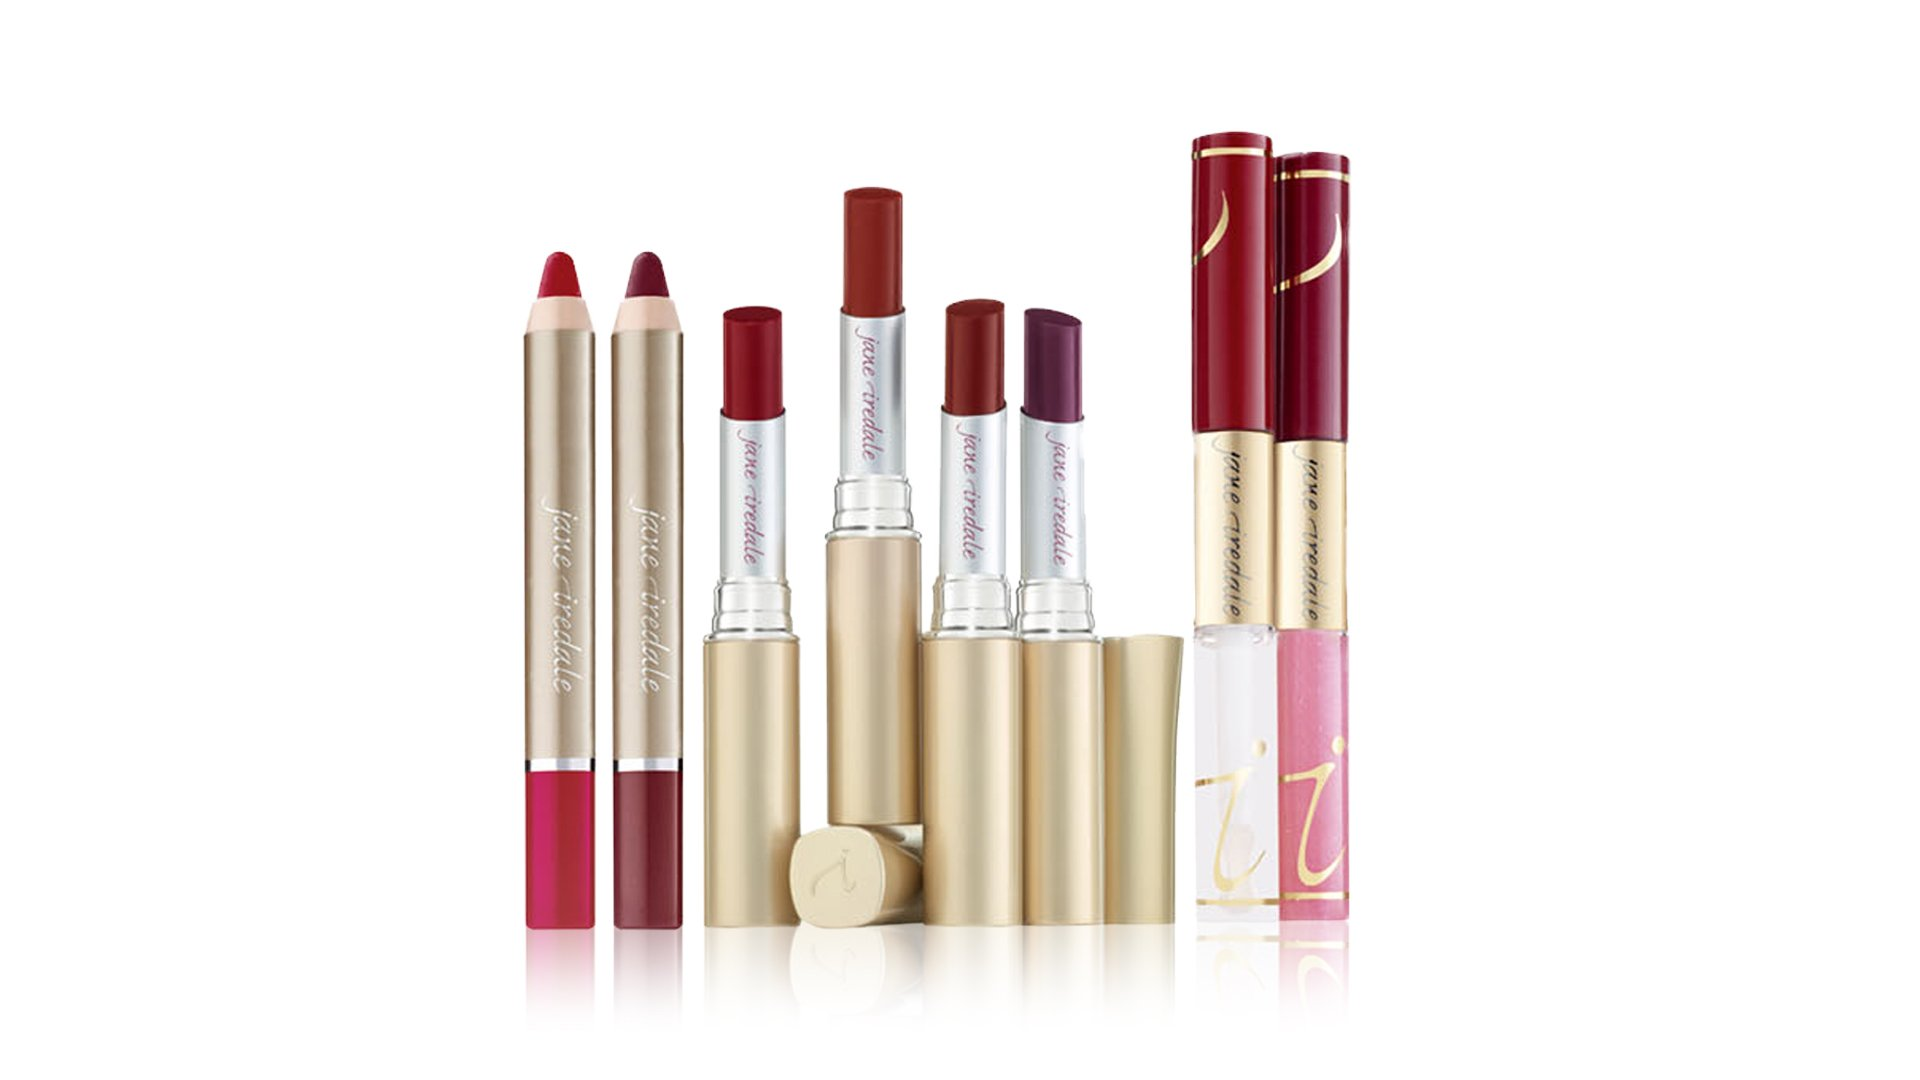 jane iredale lip definer lipsticks gloss plumper fixation